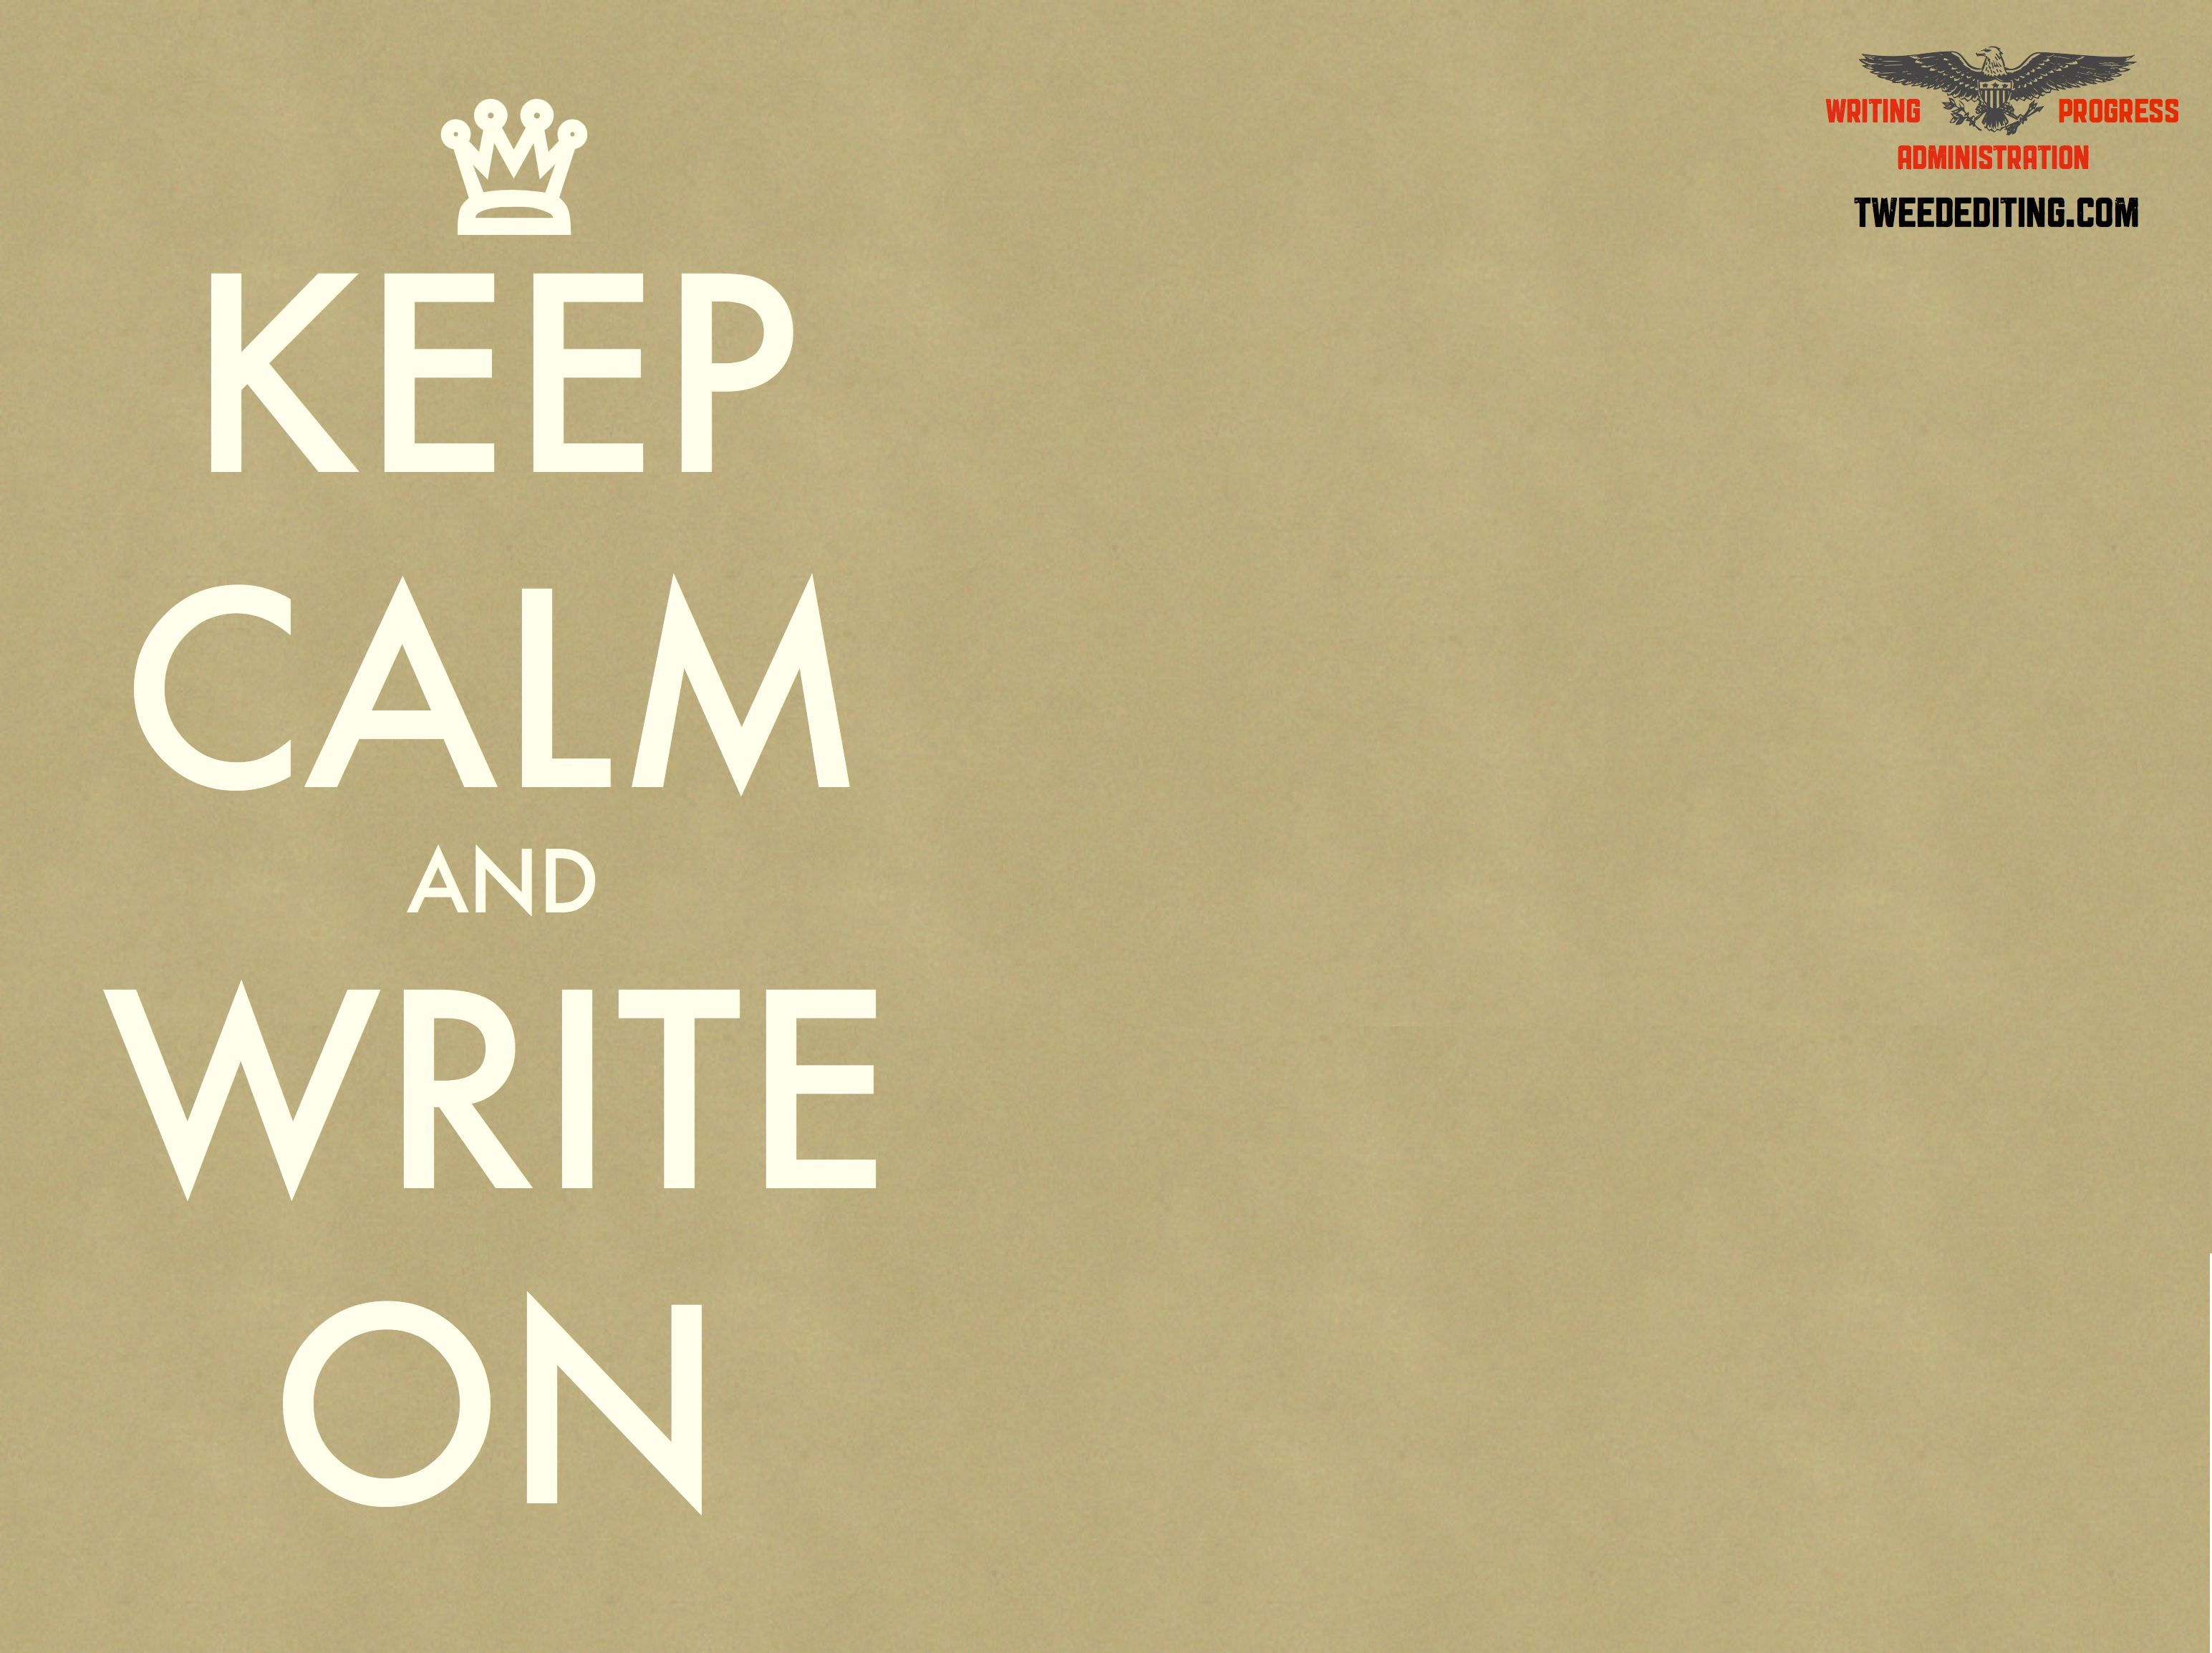 3089x2308 WPA: Keep Calm and Write On | Tweed Editing